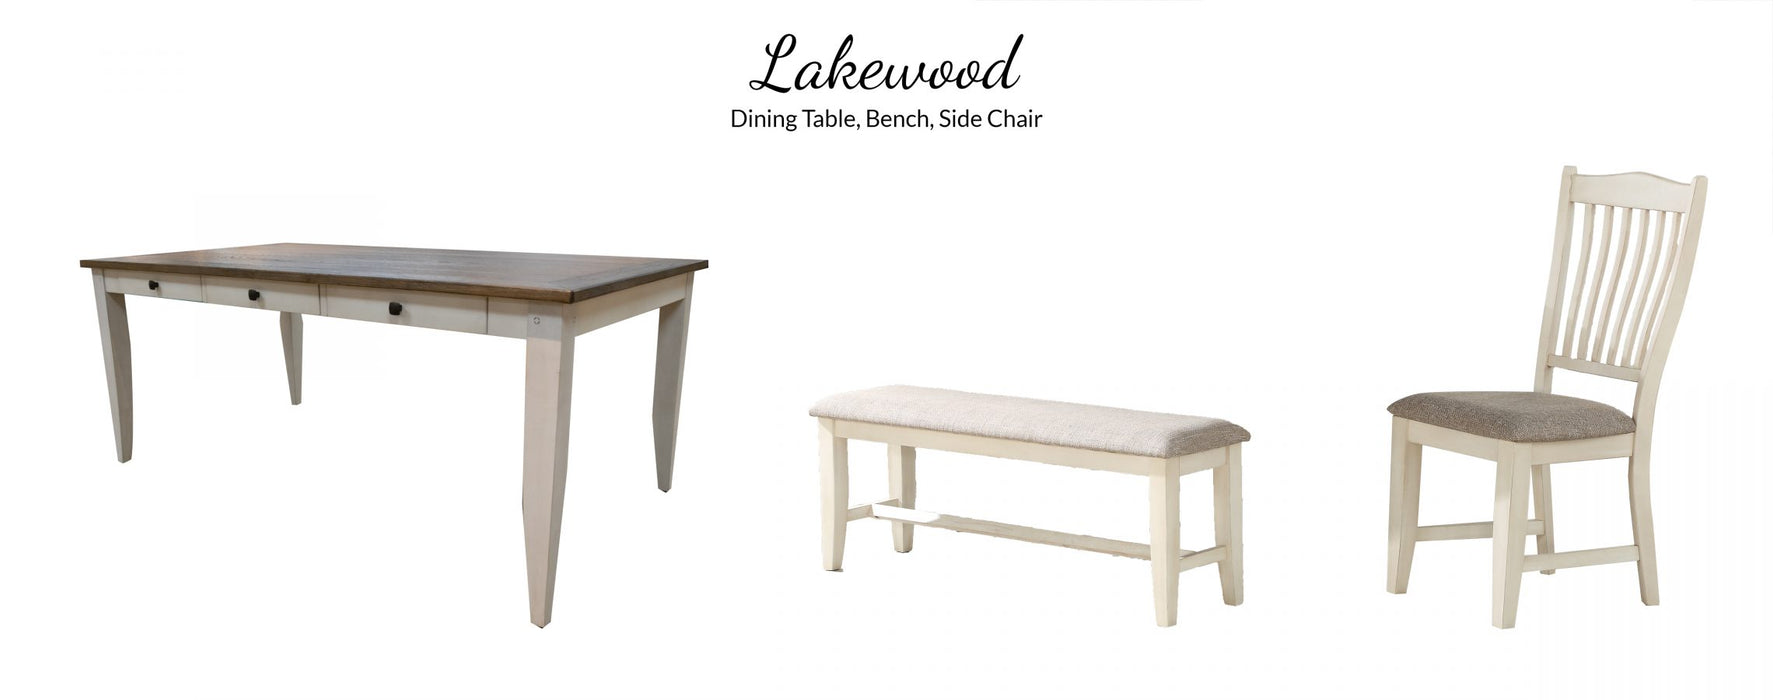 Lakewood Gray/White Dining Table